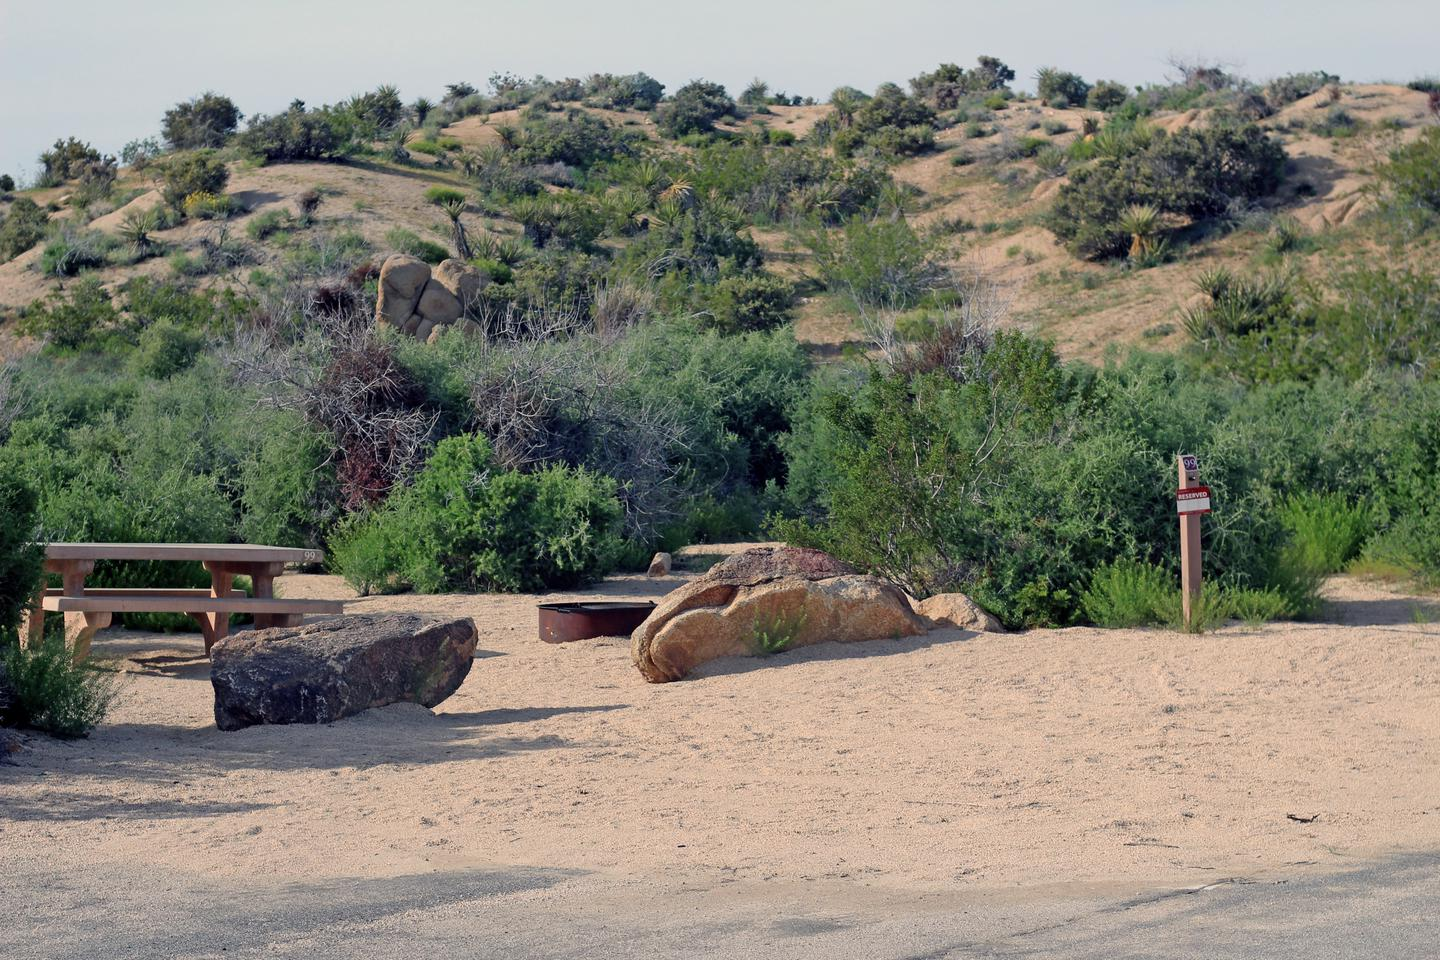 Shared parking and campsite. Picnic table surrounded by boulders and green plantsShared parking and campsite.